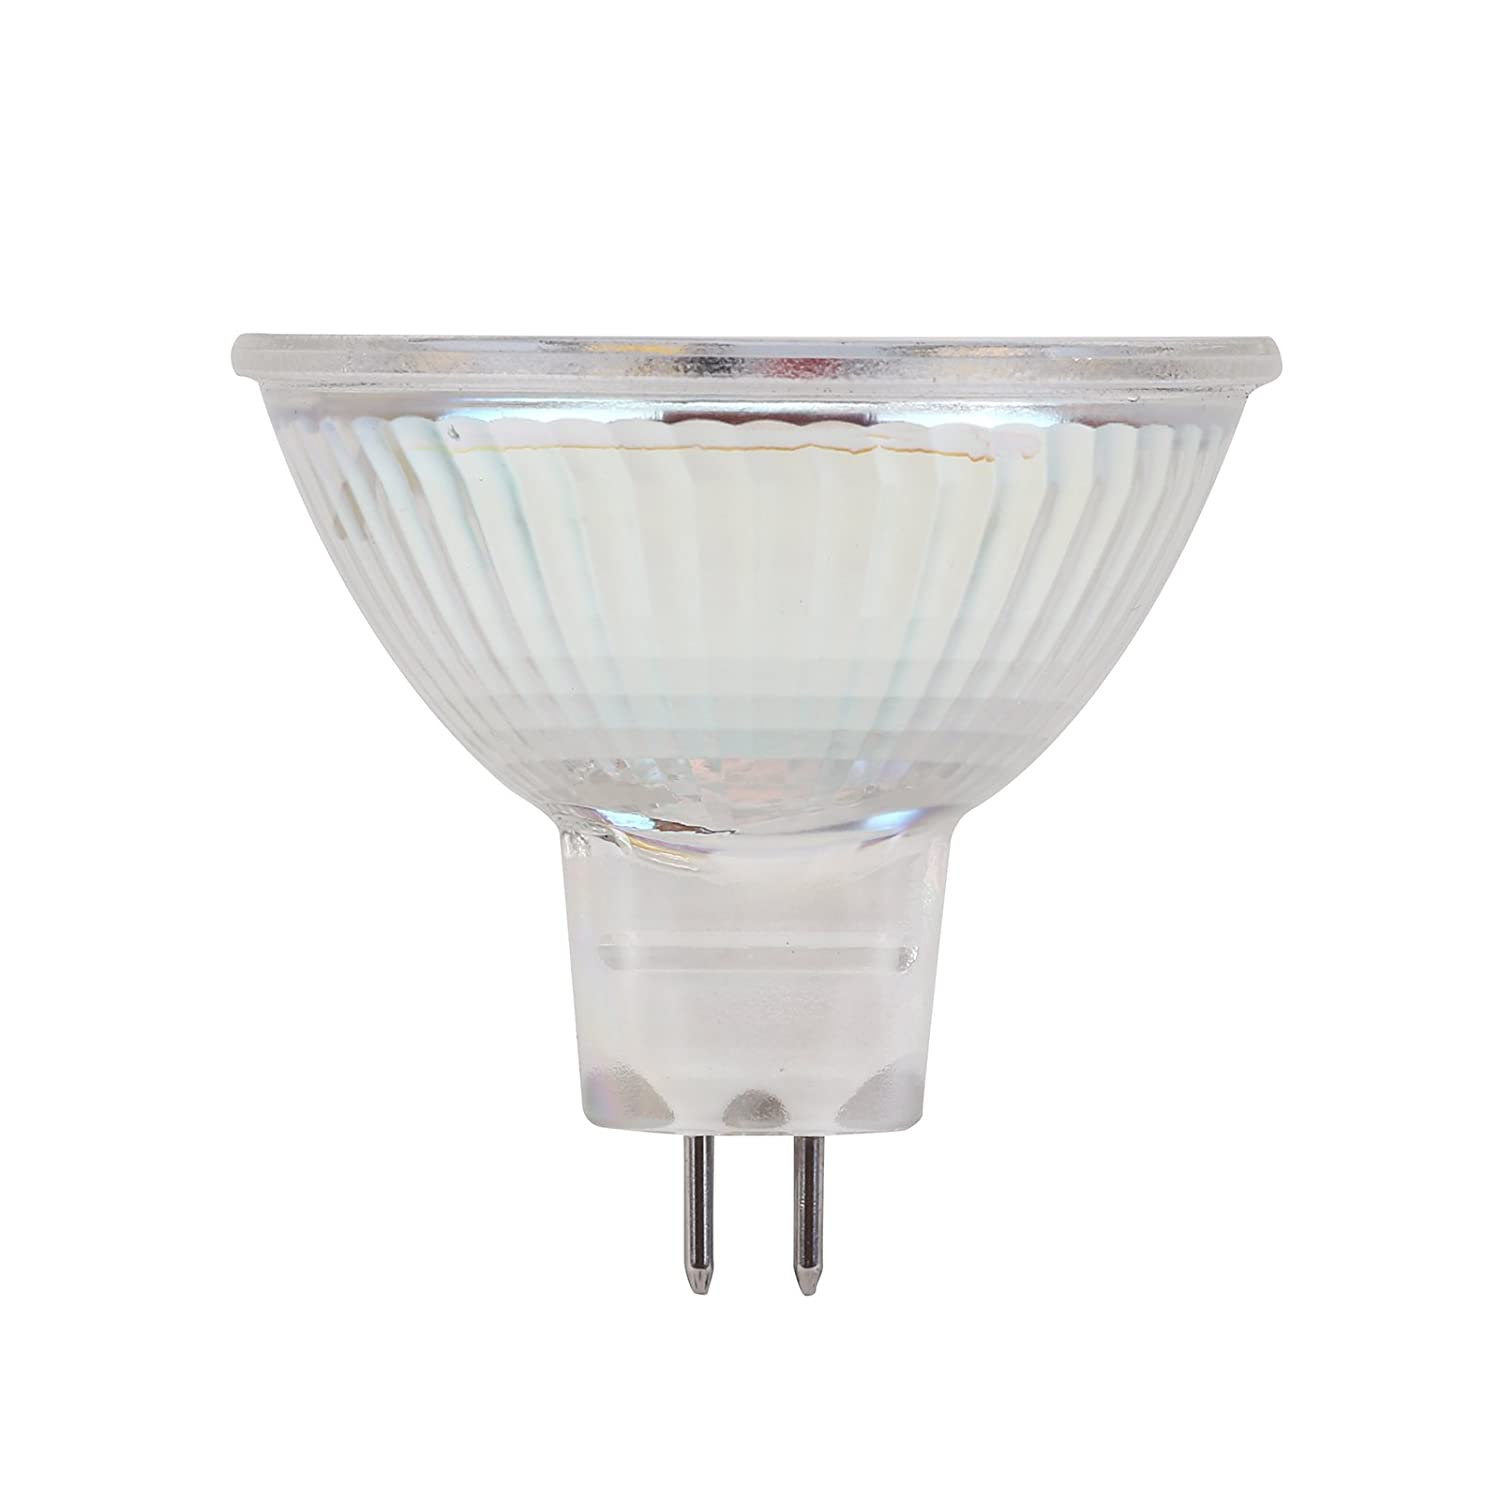 Nada MR16 LED Light Bulbs with GU5.3 Base 40W Equivalent Halogen Replacement Warm White 3W Soft White 3000K Spotlight with 330 Lumen 8 Pack Nada Industrial